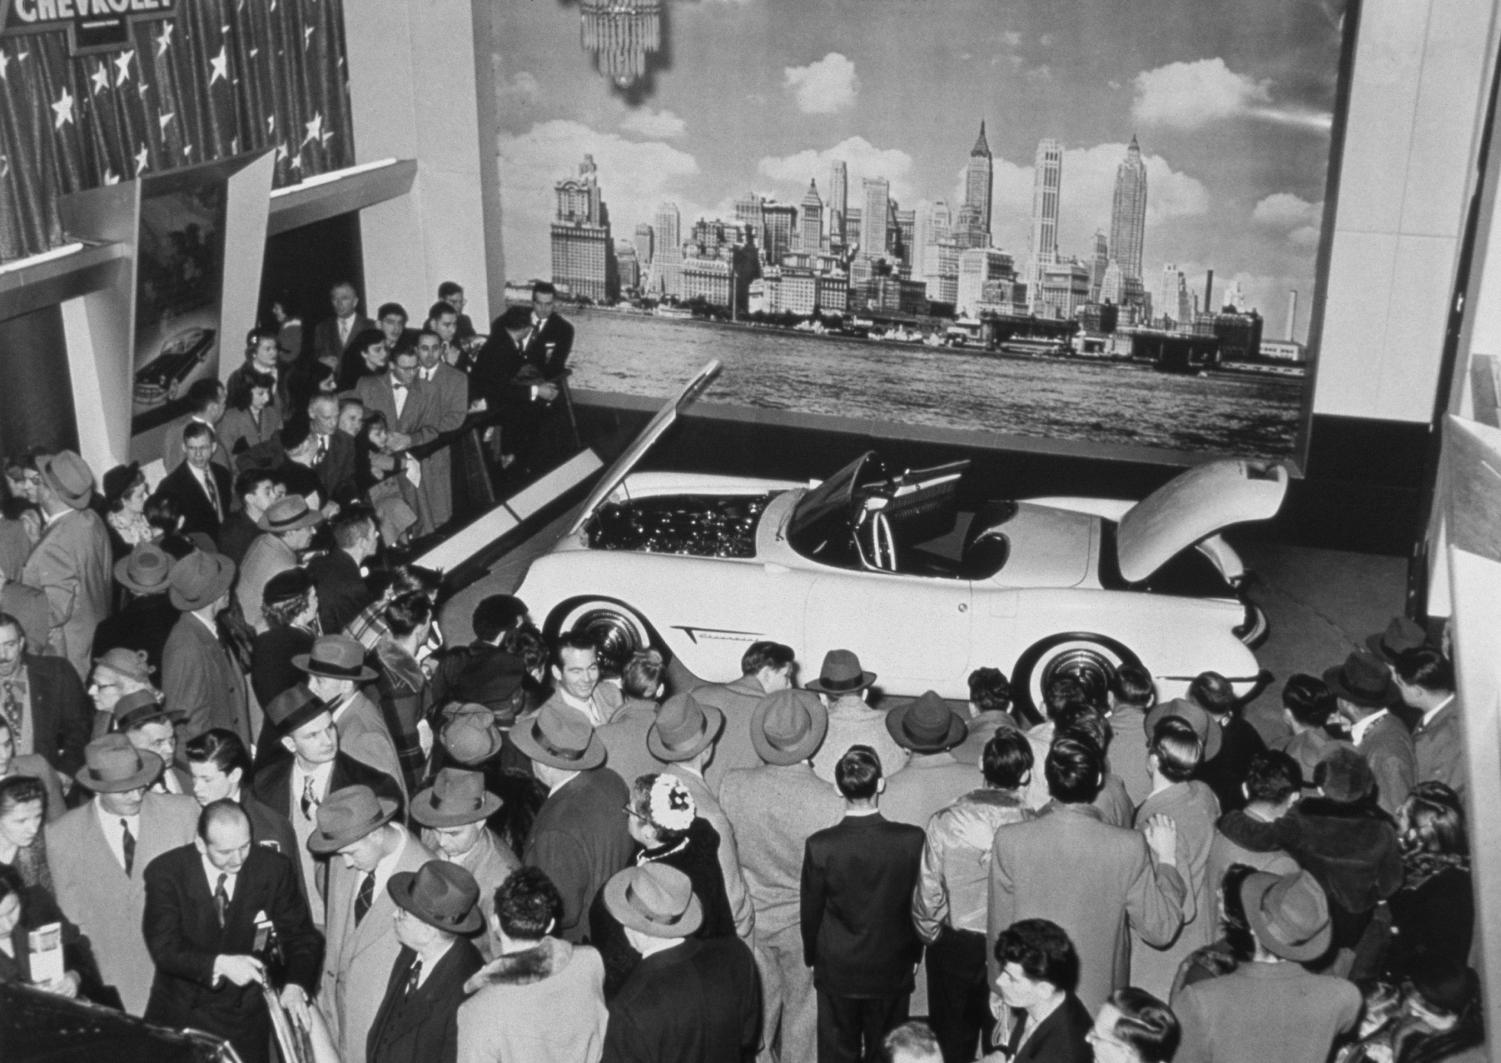 The first Chevrolet Corvette on display at the 1953 General Motors Motorama car show. Today, production of the newest C8 Corvette has been delayed due to the GM strike.